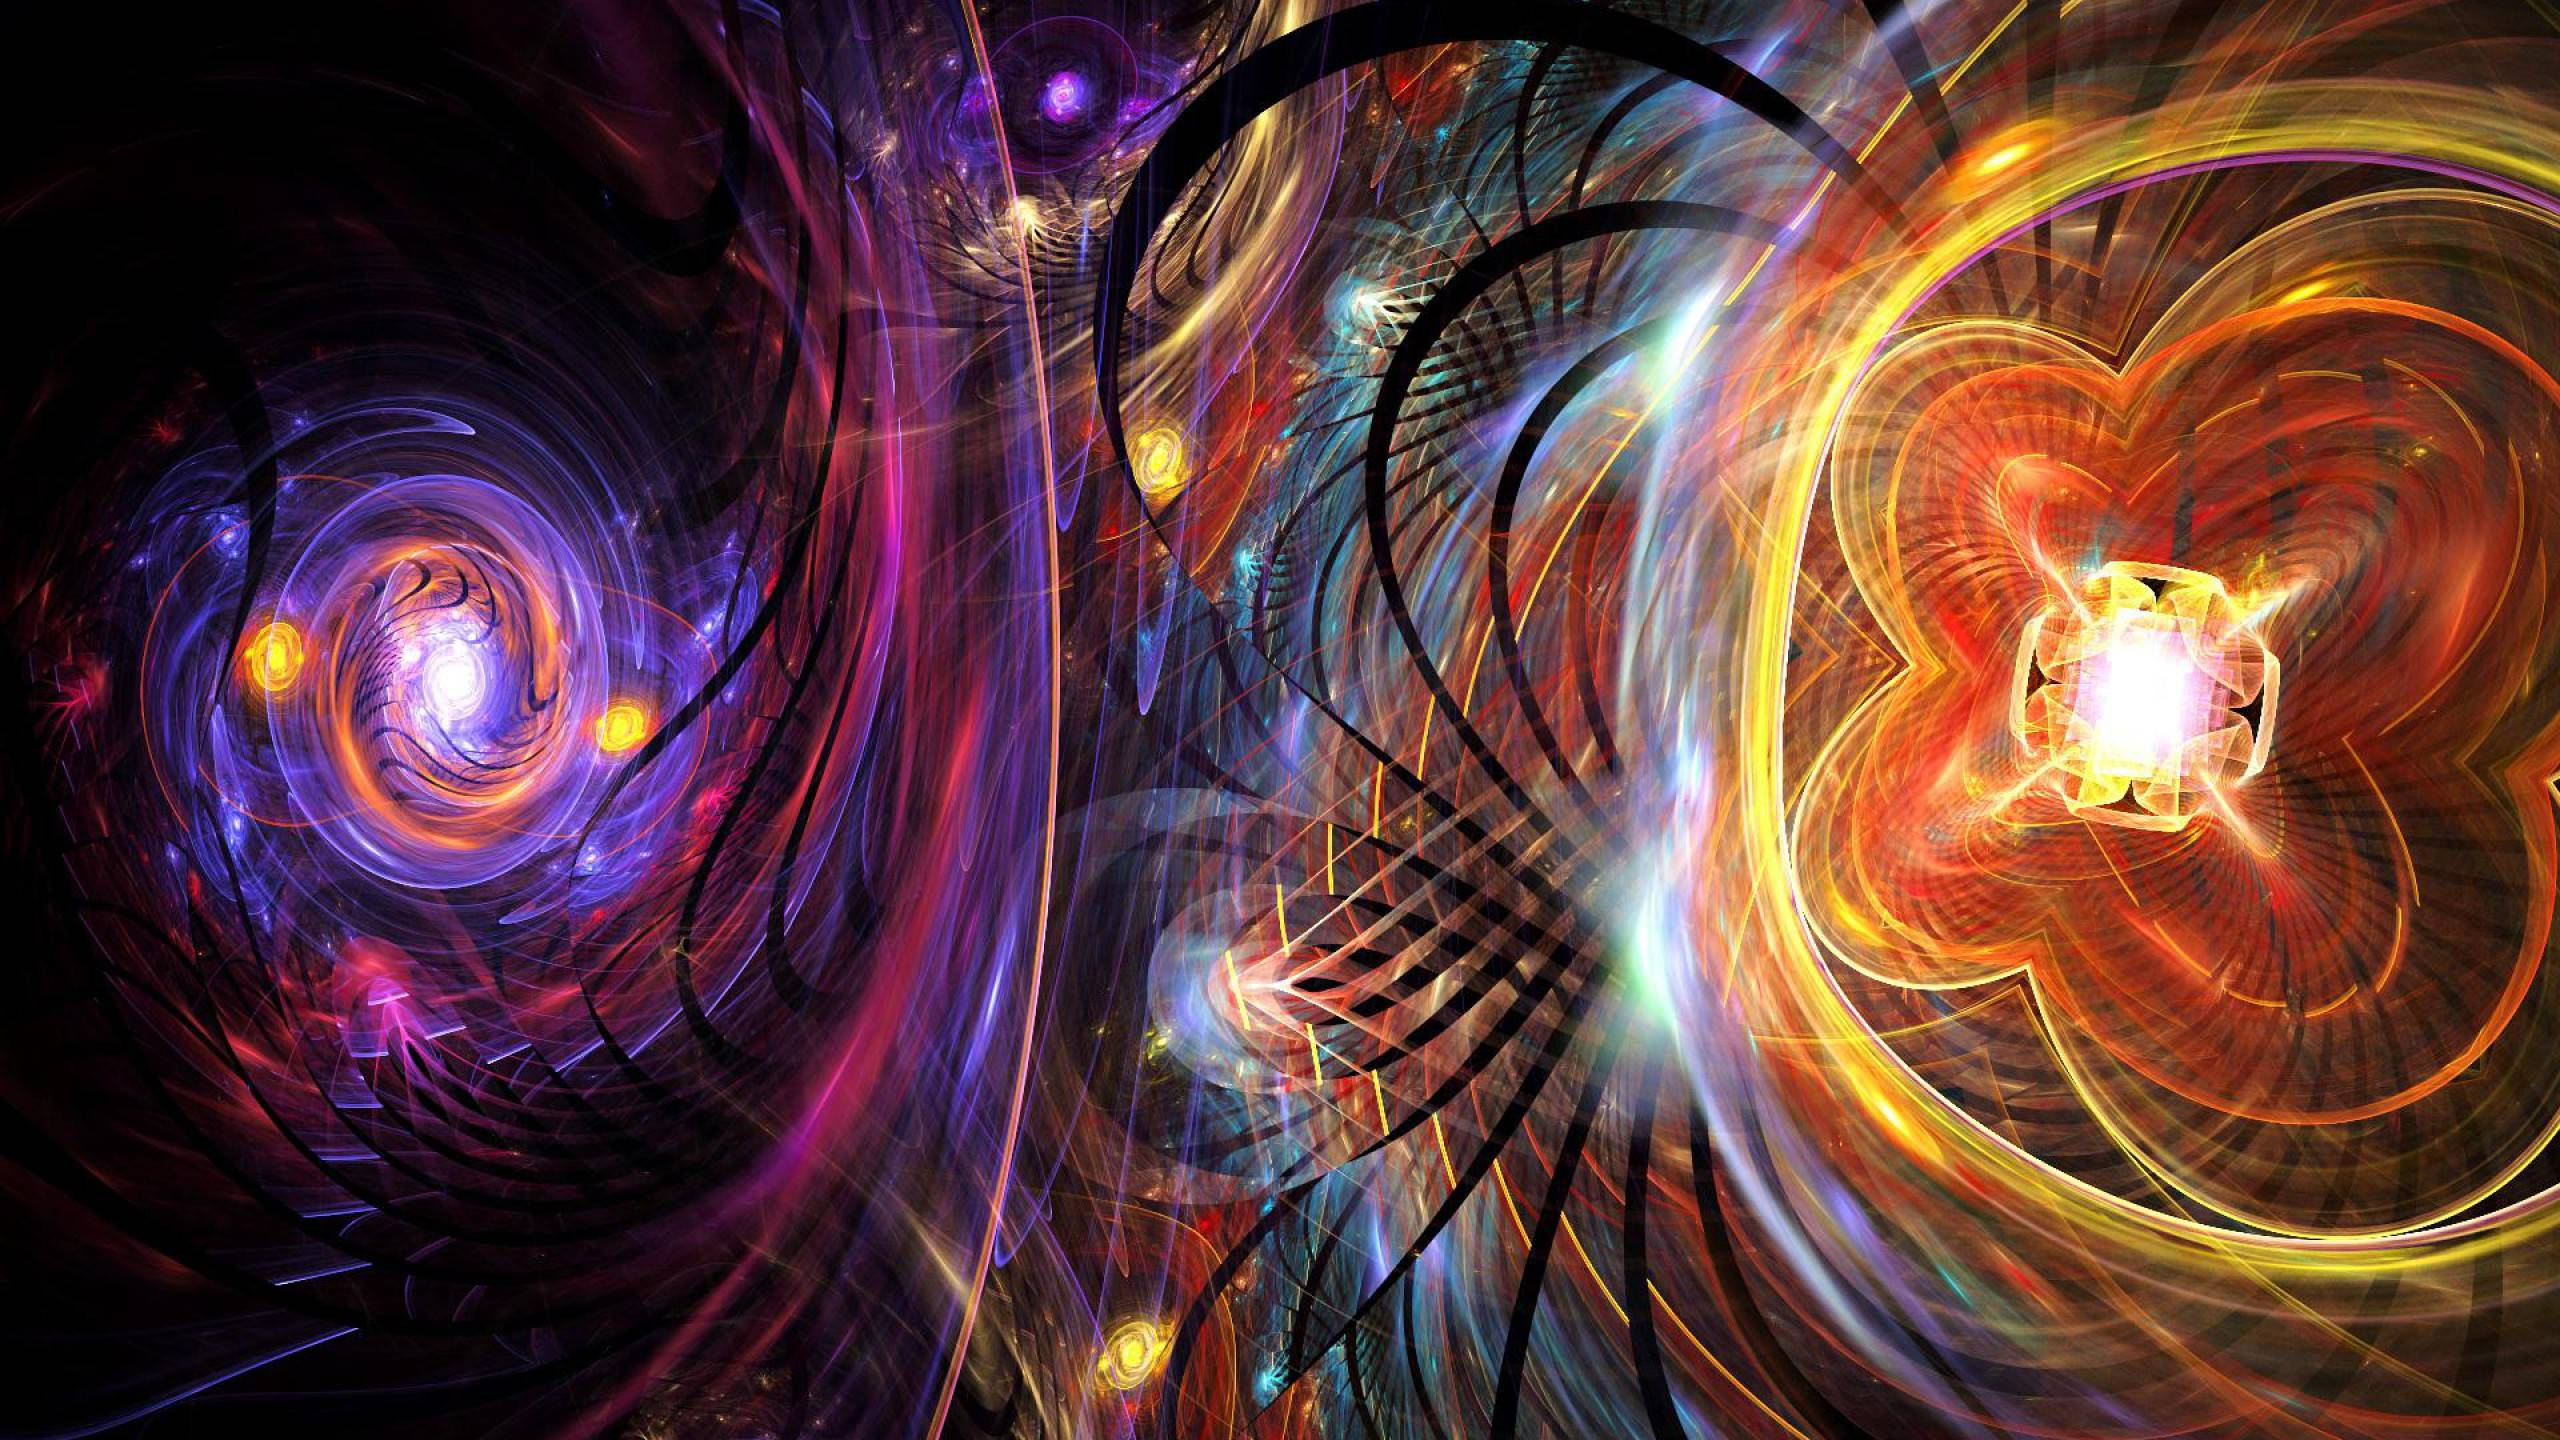 trippy psychedelic hd wallpaper - photo #13